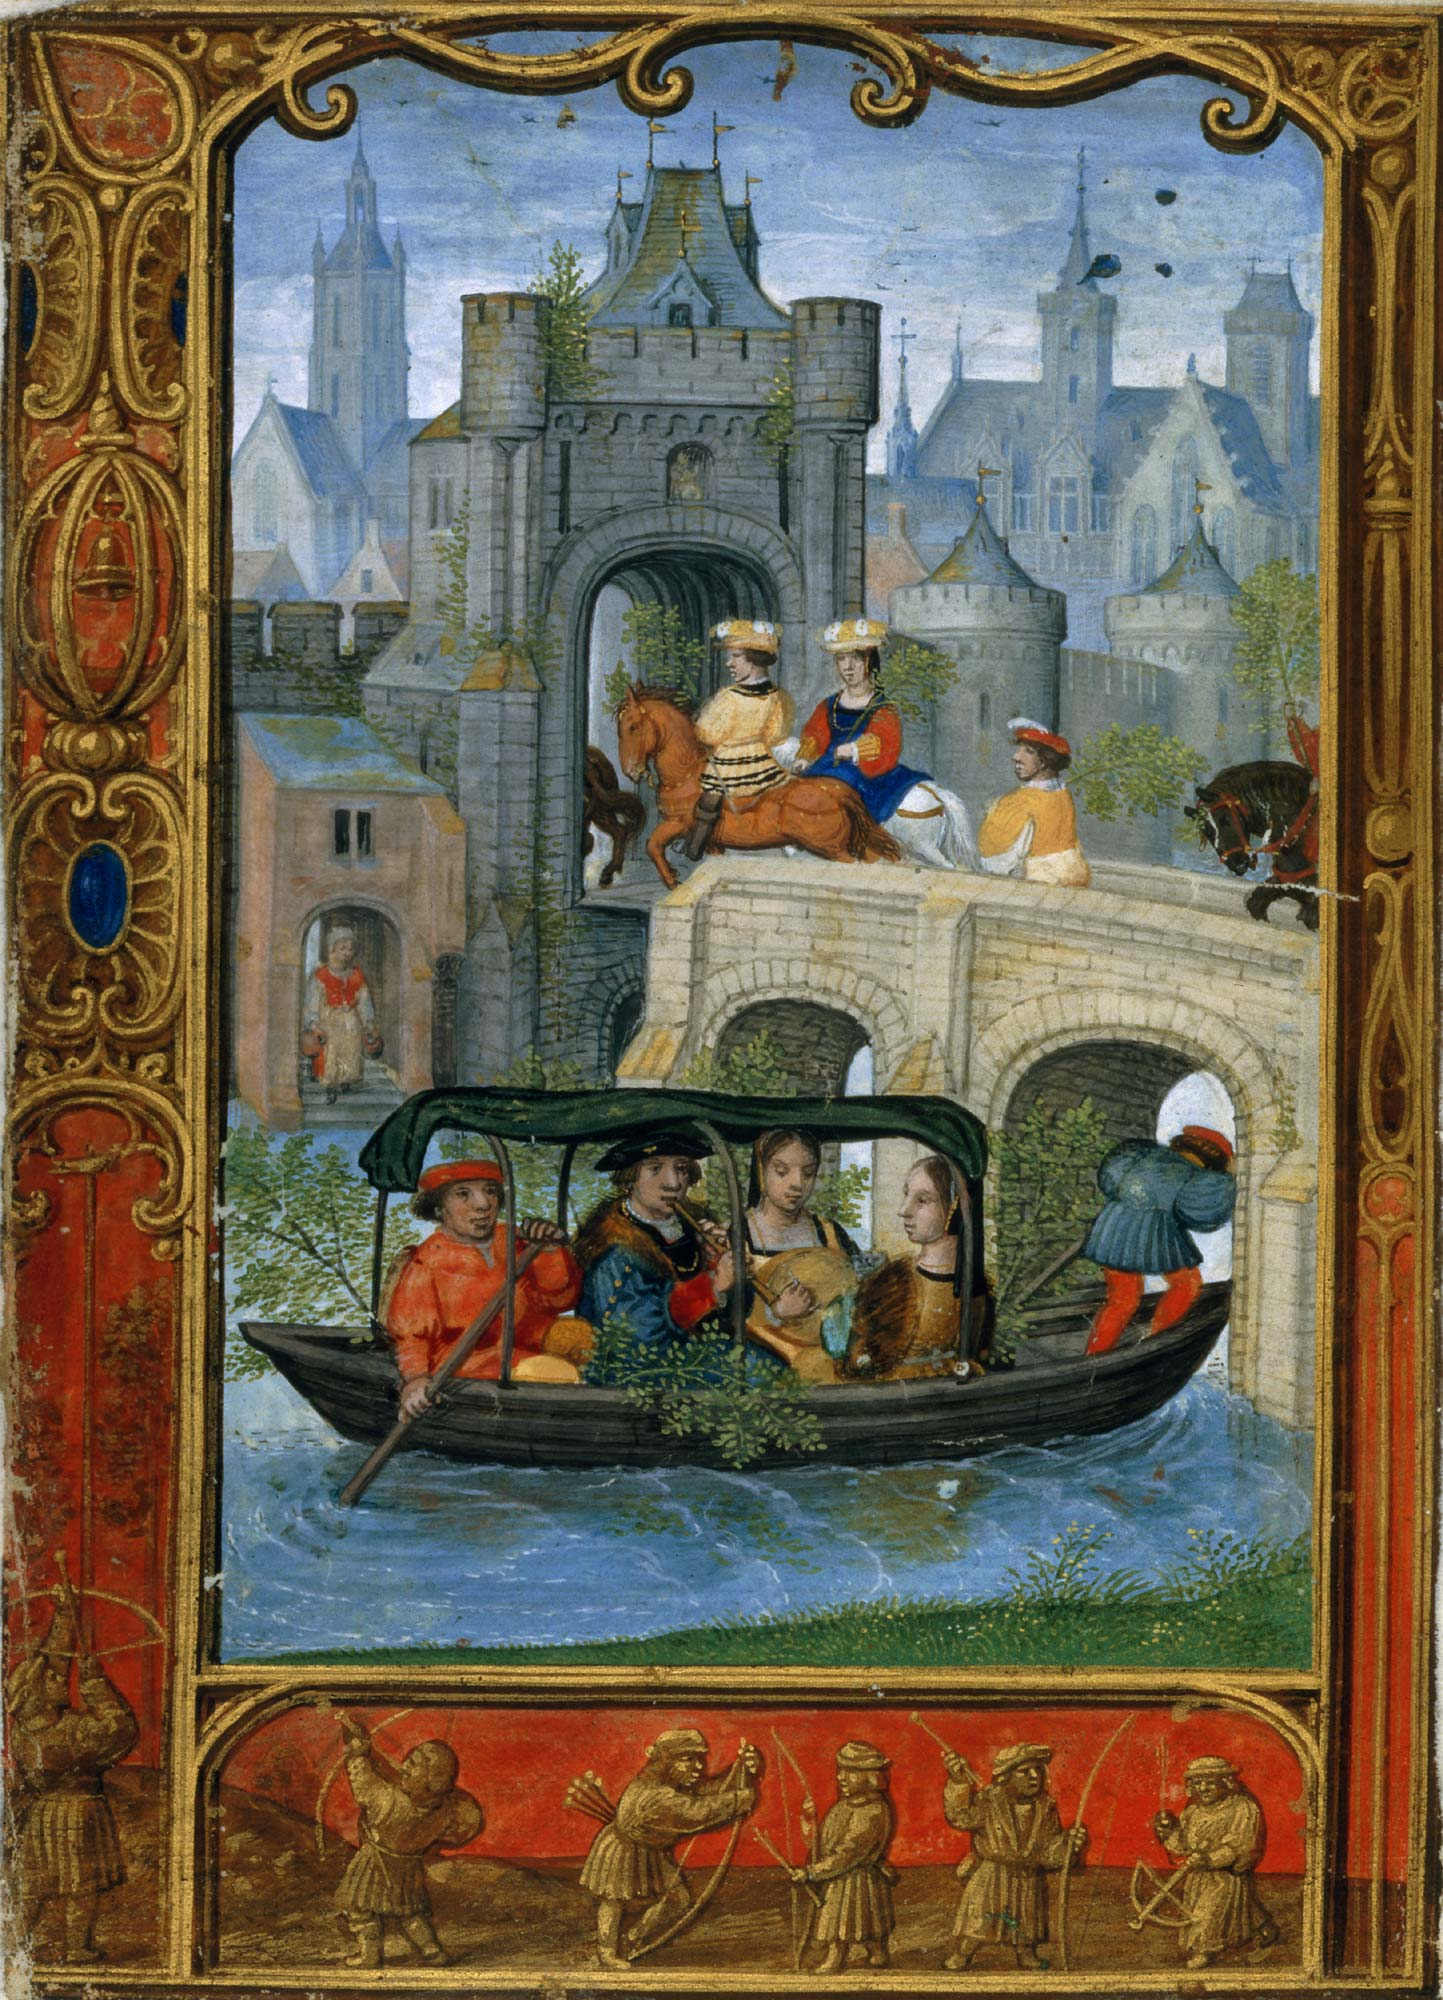 The golf Book f.22v showing a boating party